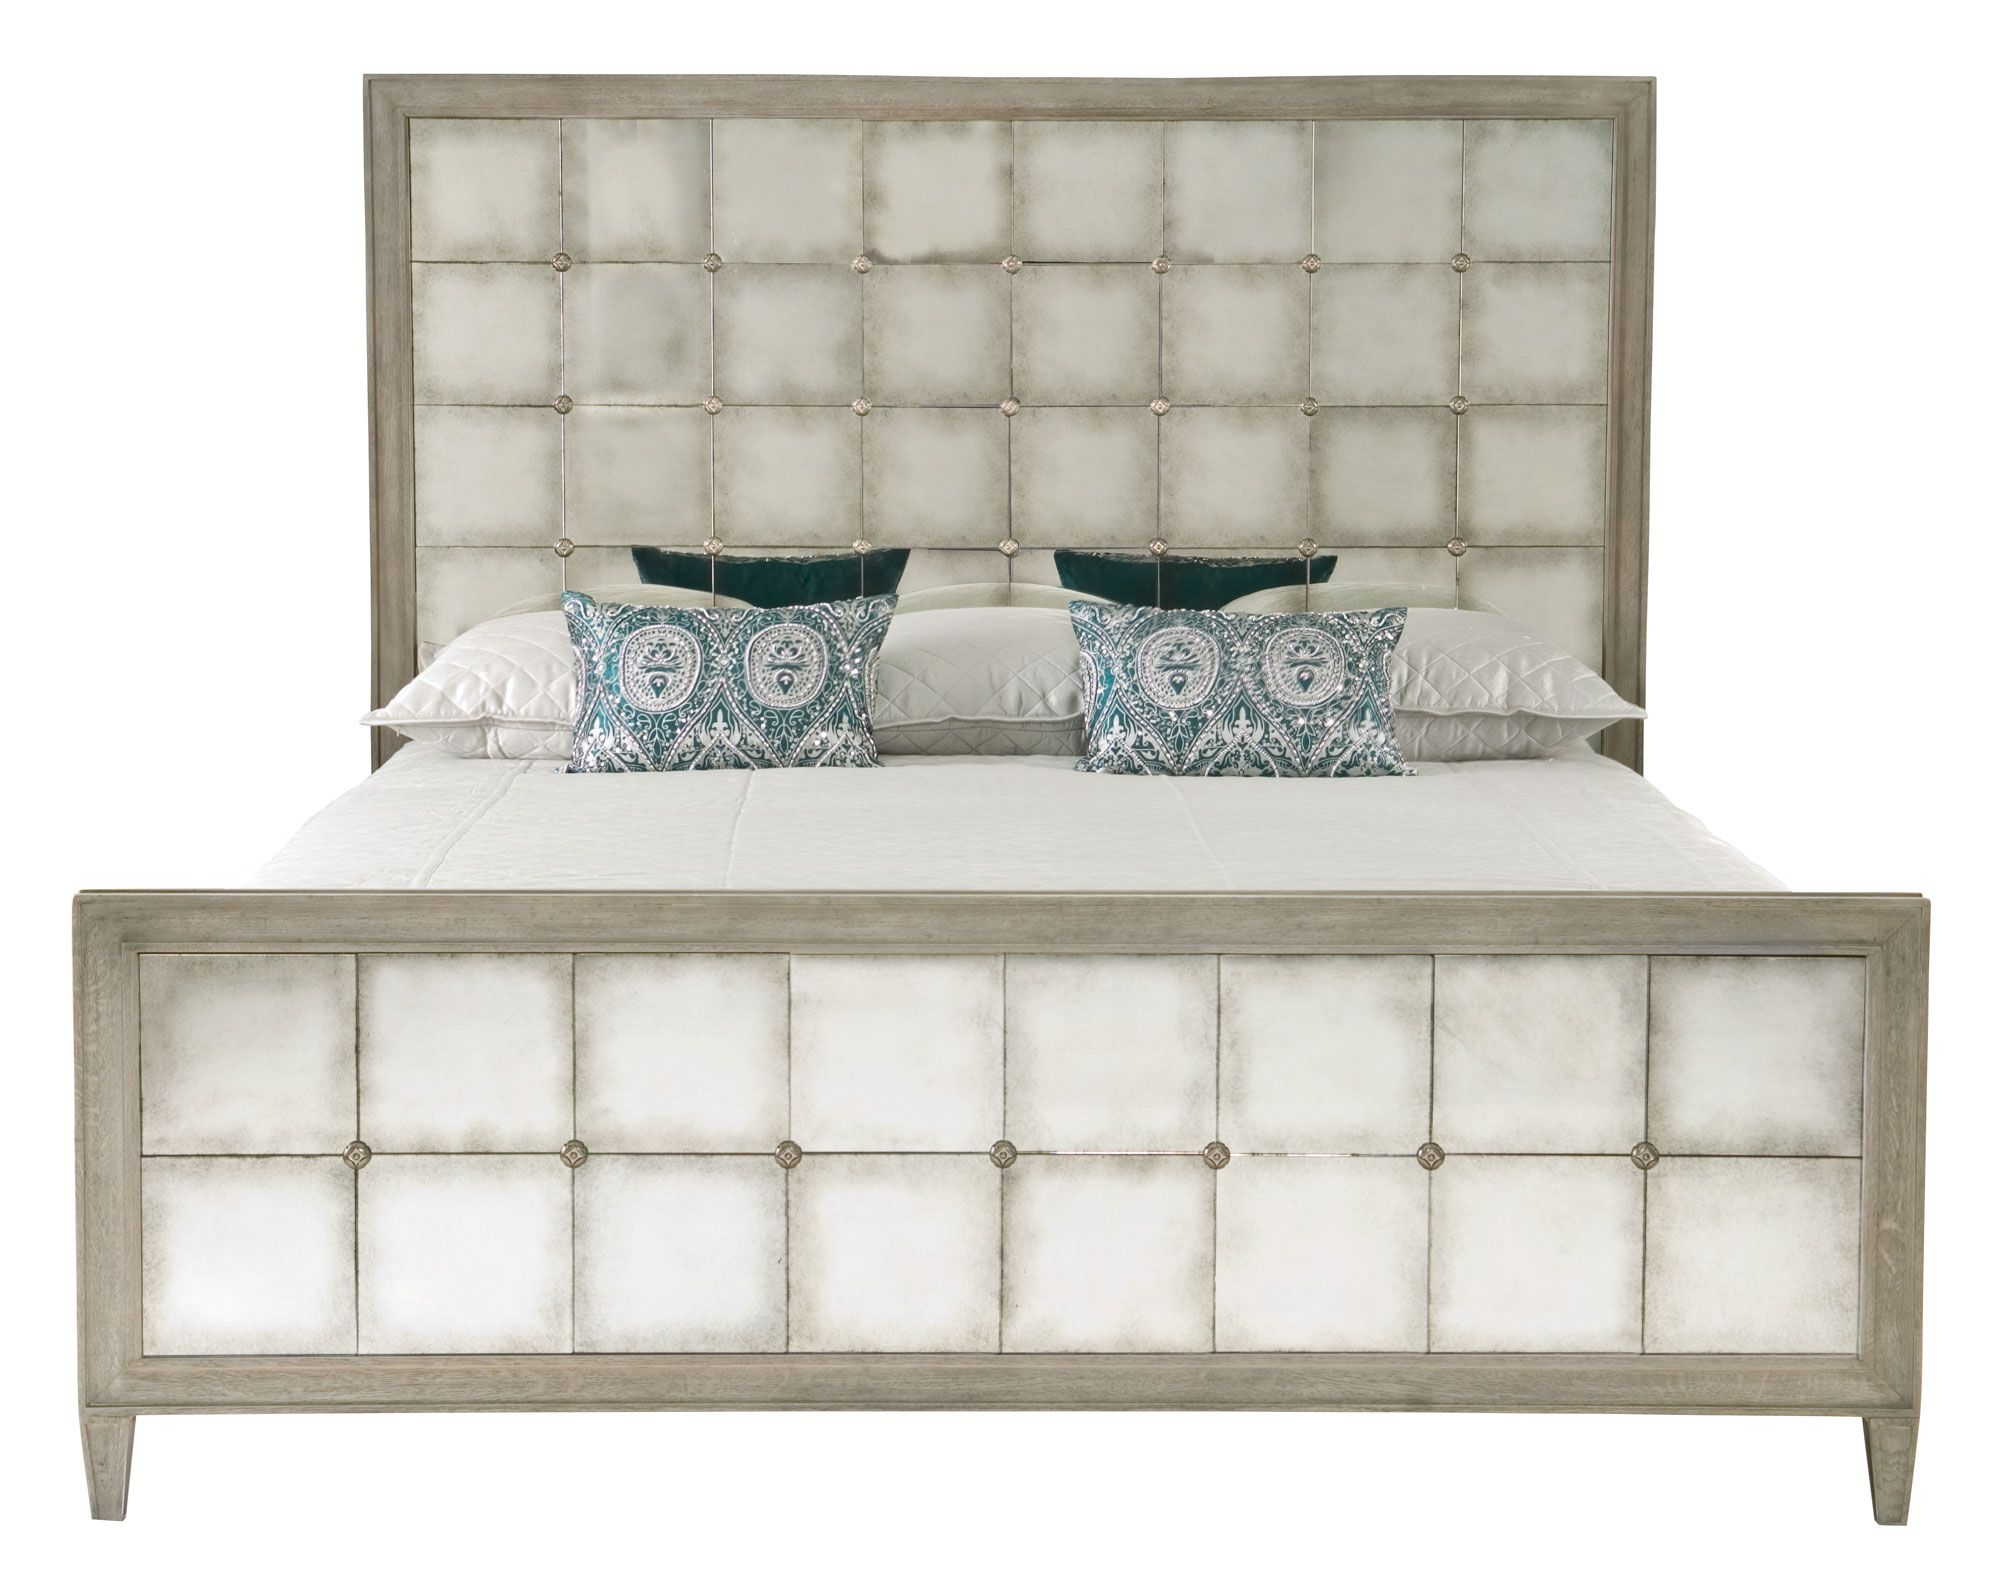 359 H 06 F06 R06 Marquesa Mirrored Bed - Bernhardt King $4710